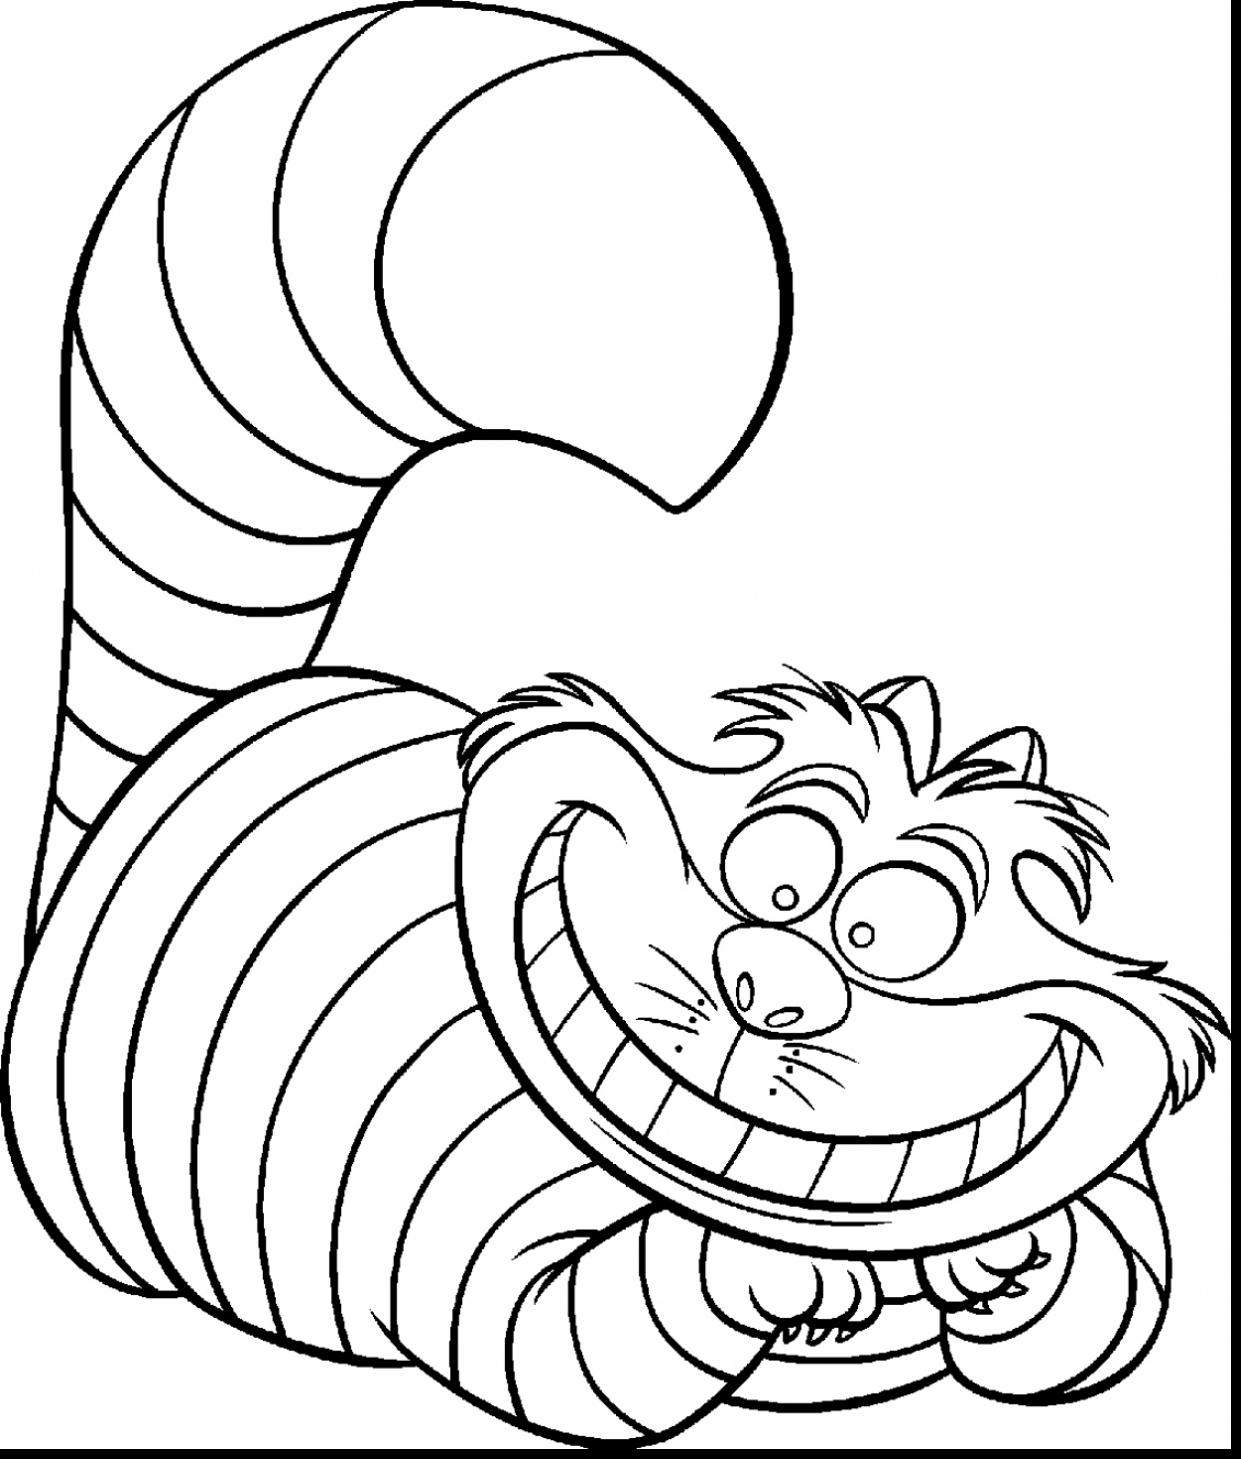 1241x1459 Fascinating Cheshire Cat Coloring Page Alice In Wonderland Pages